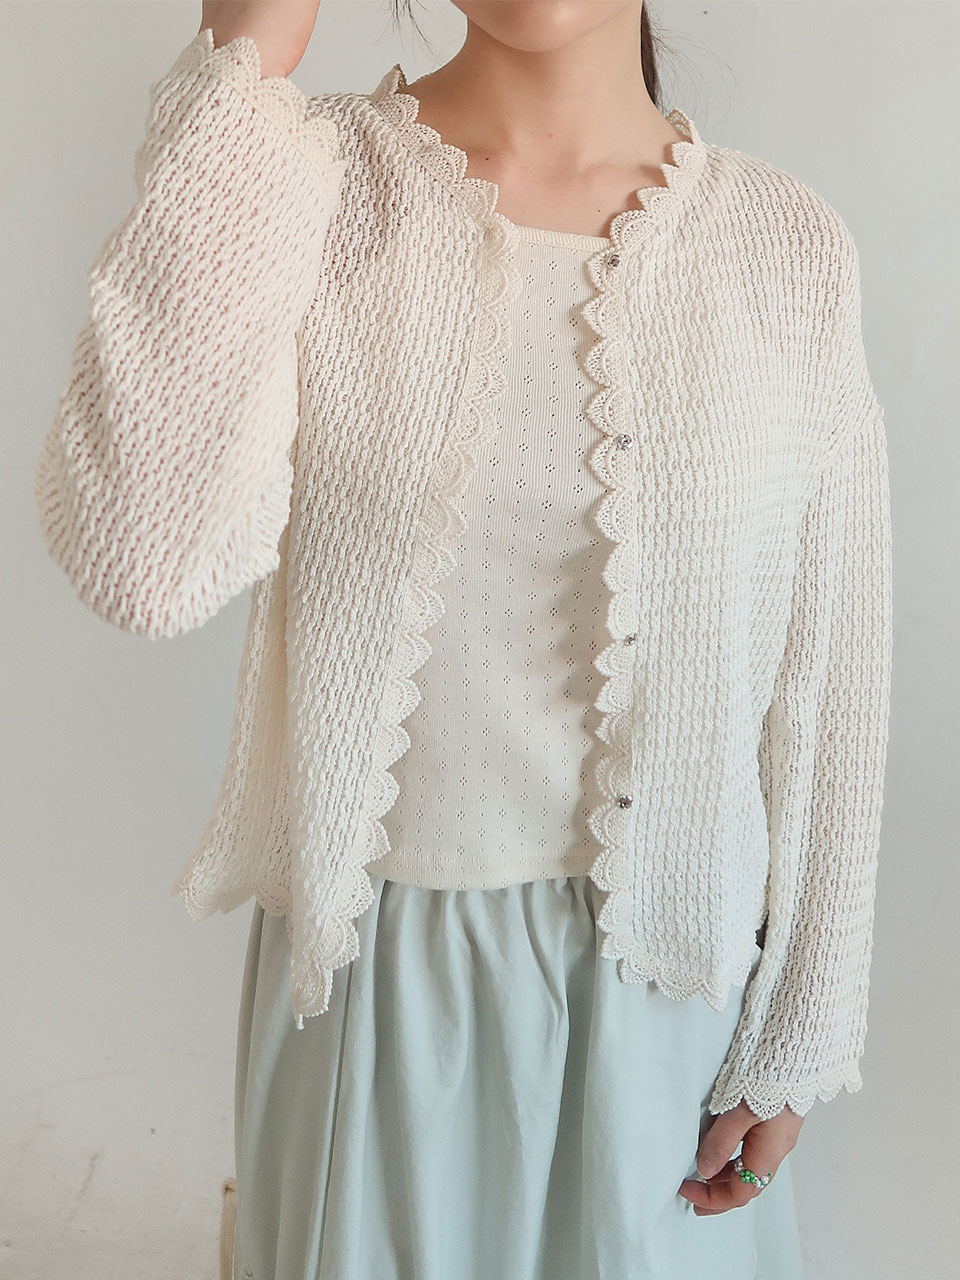 knitting snap cardigan(2color)